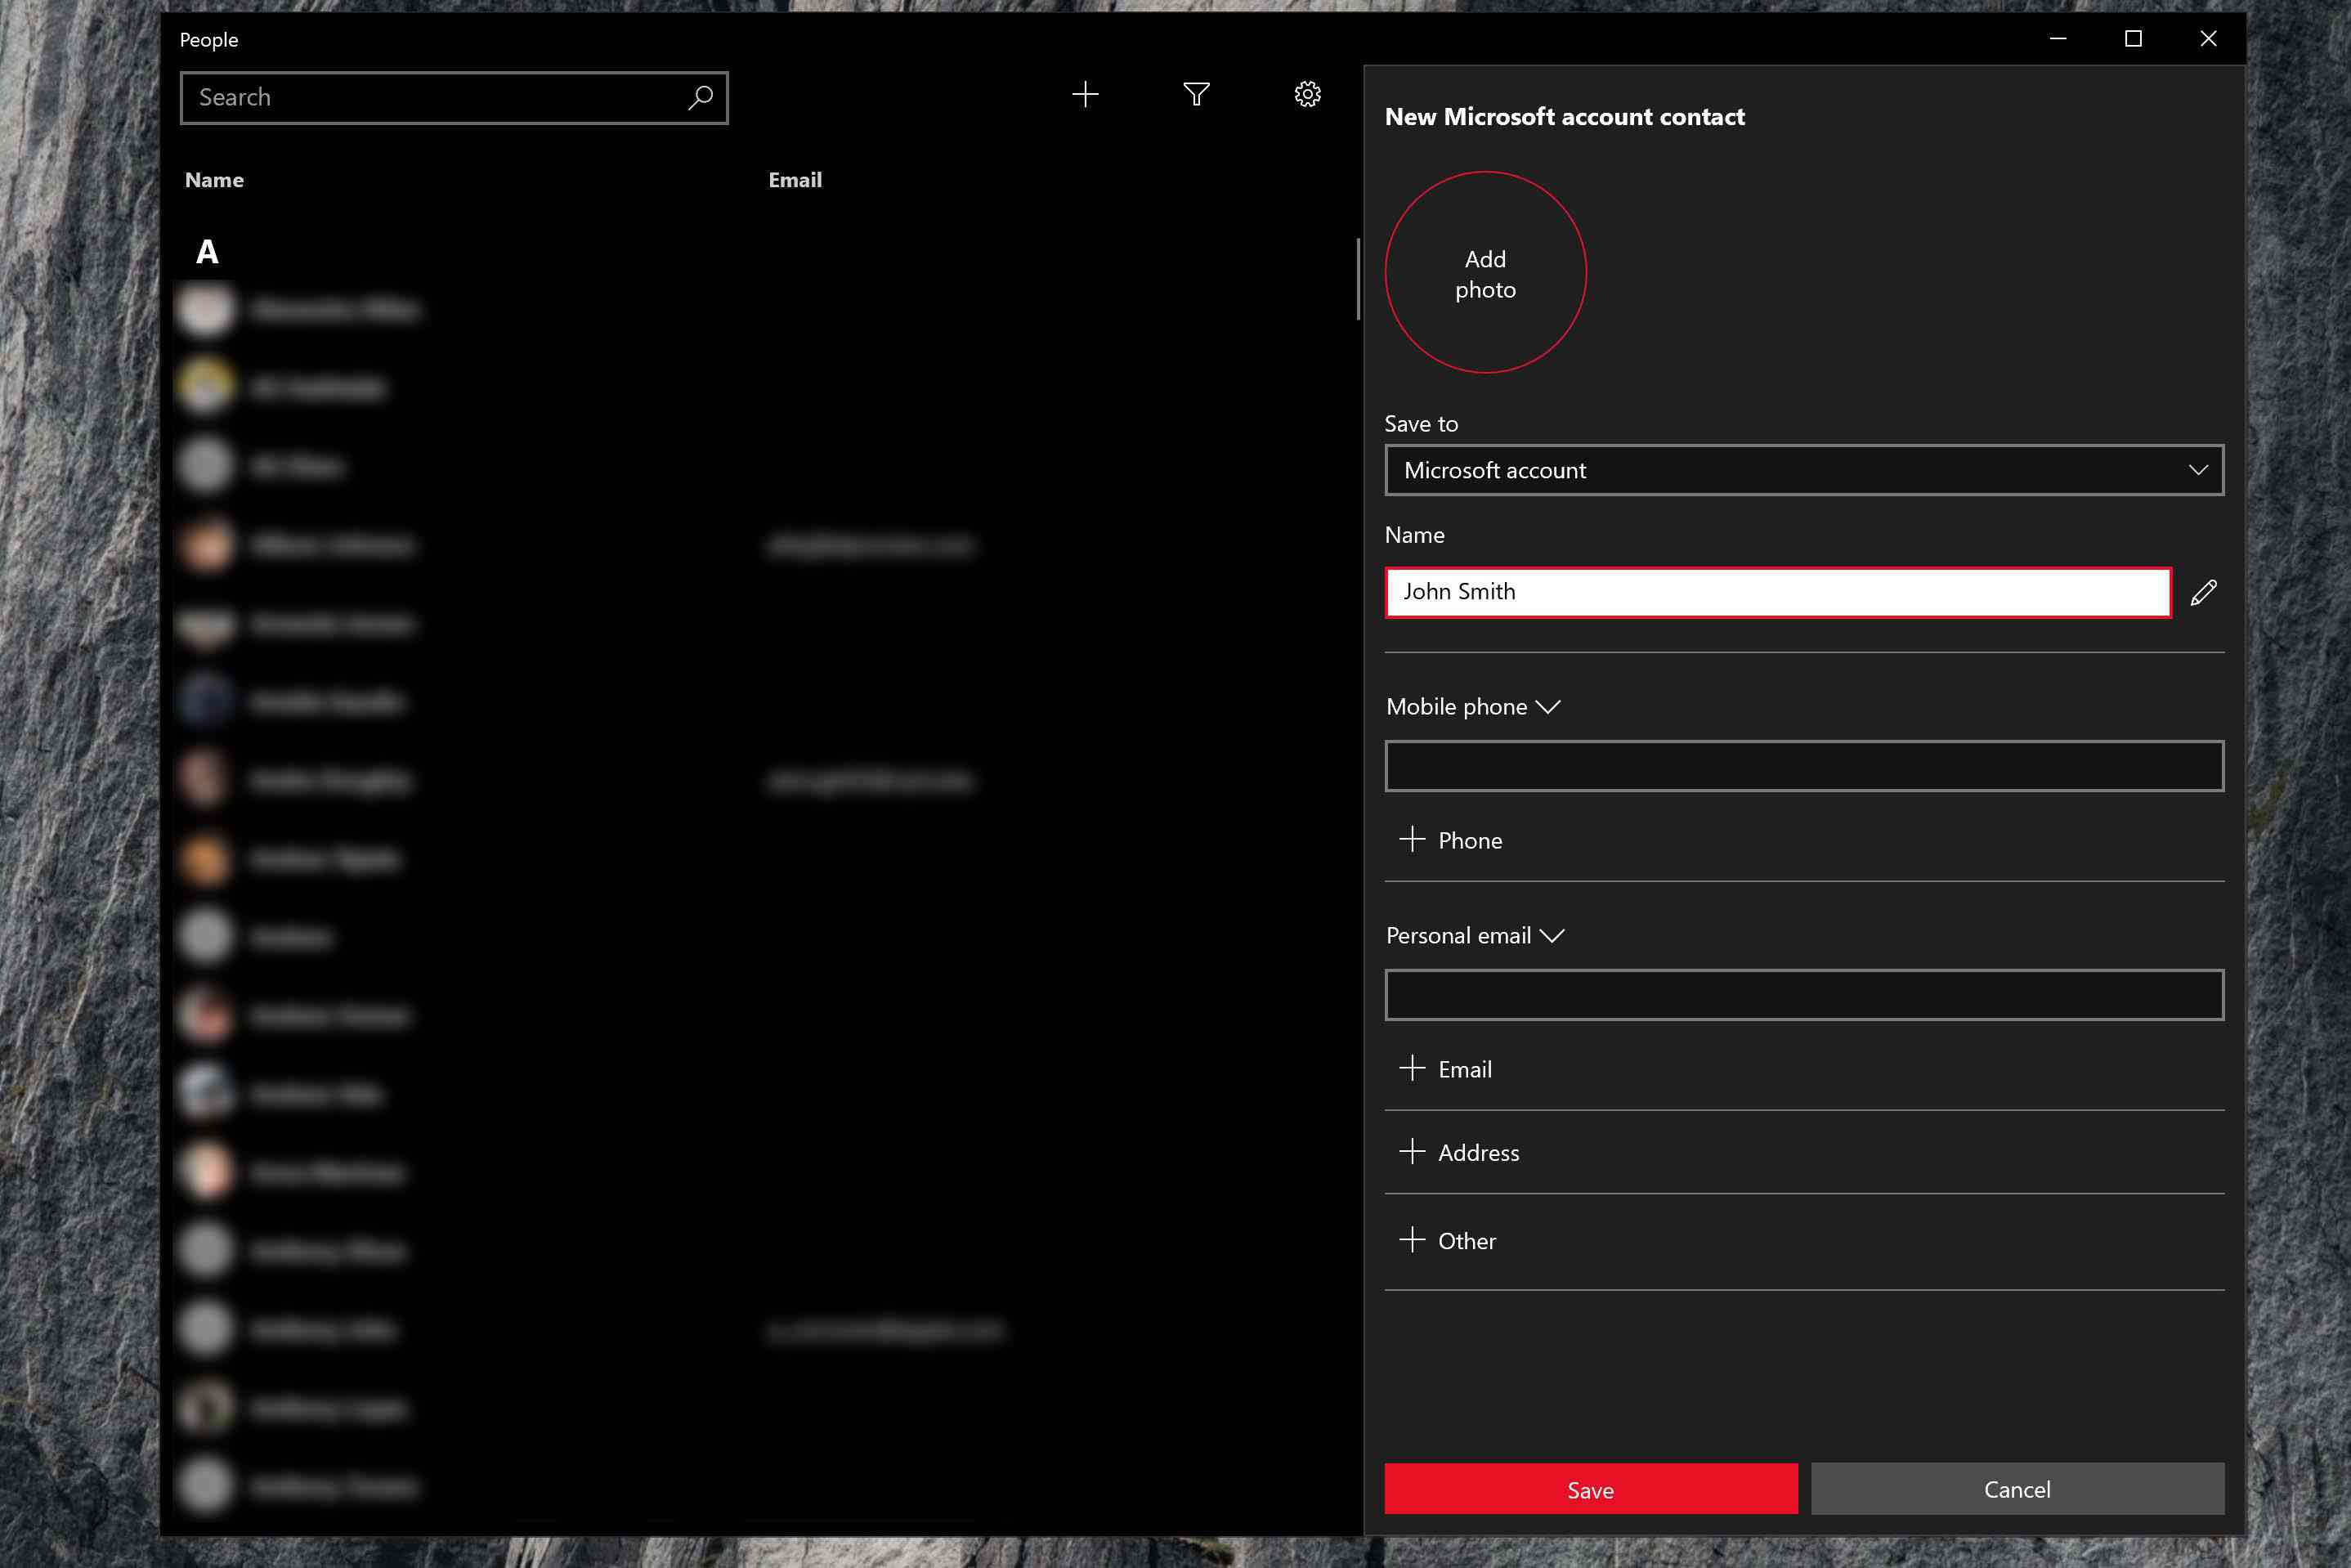 Screenshot showing how to add a new contact